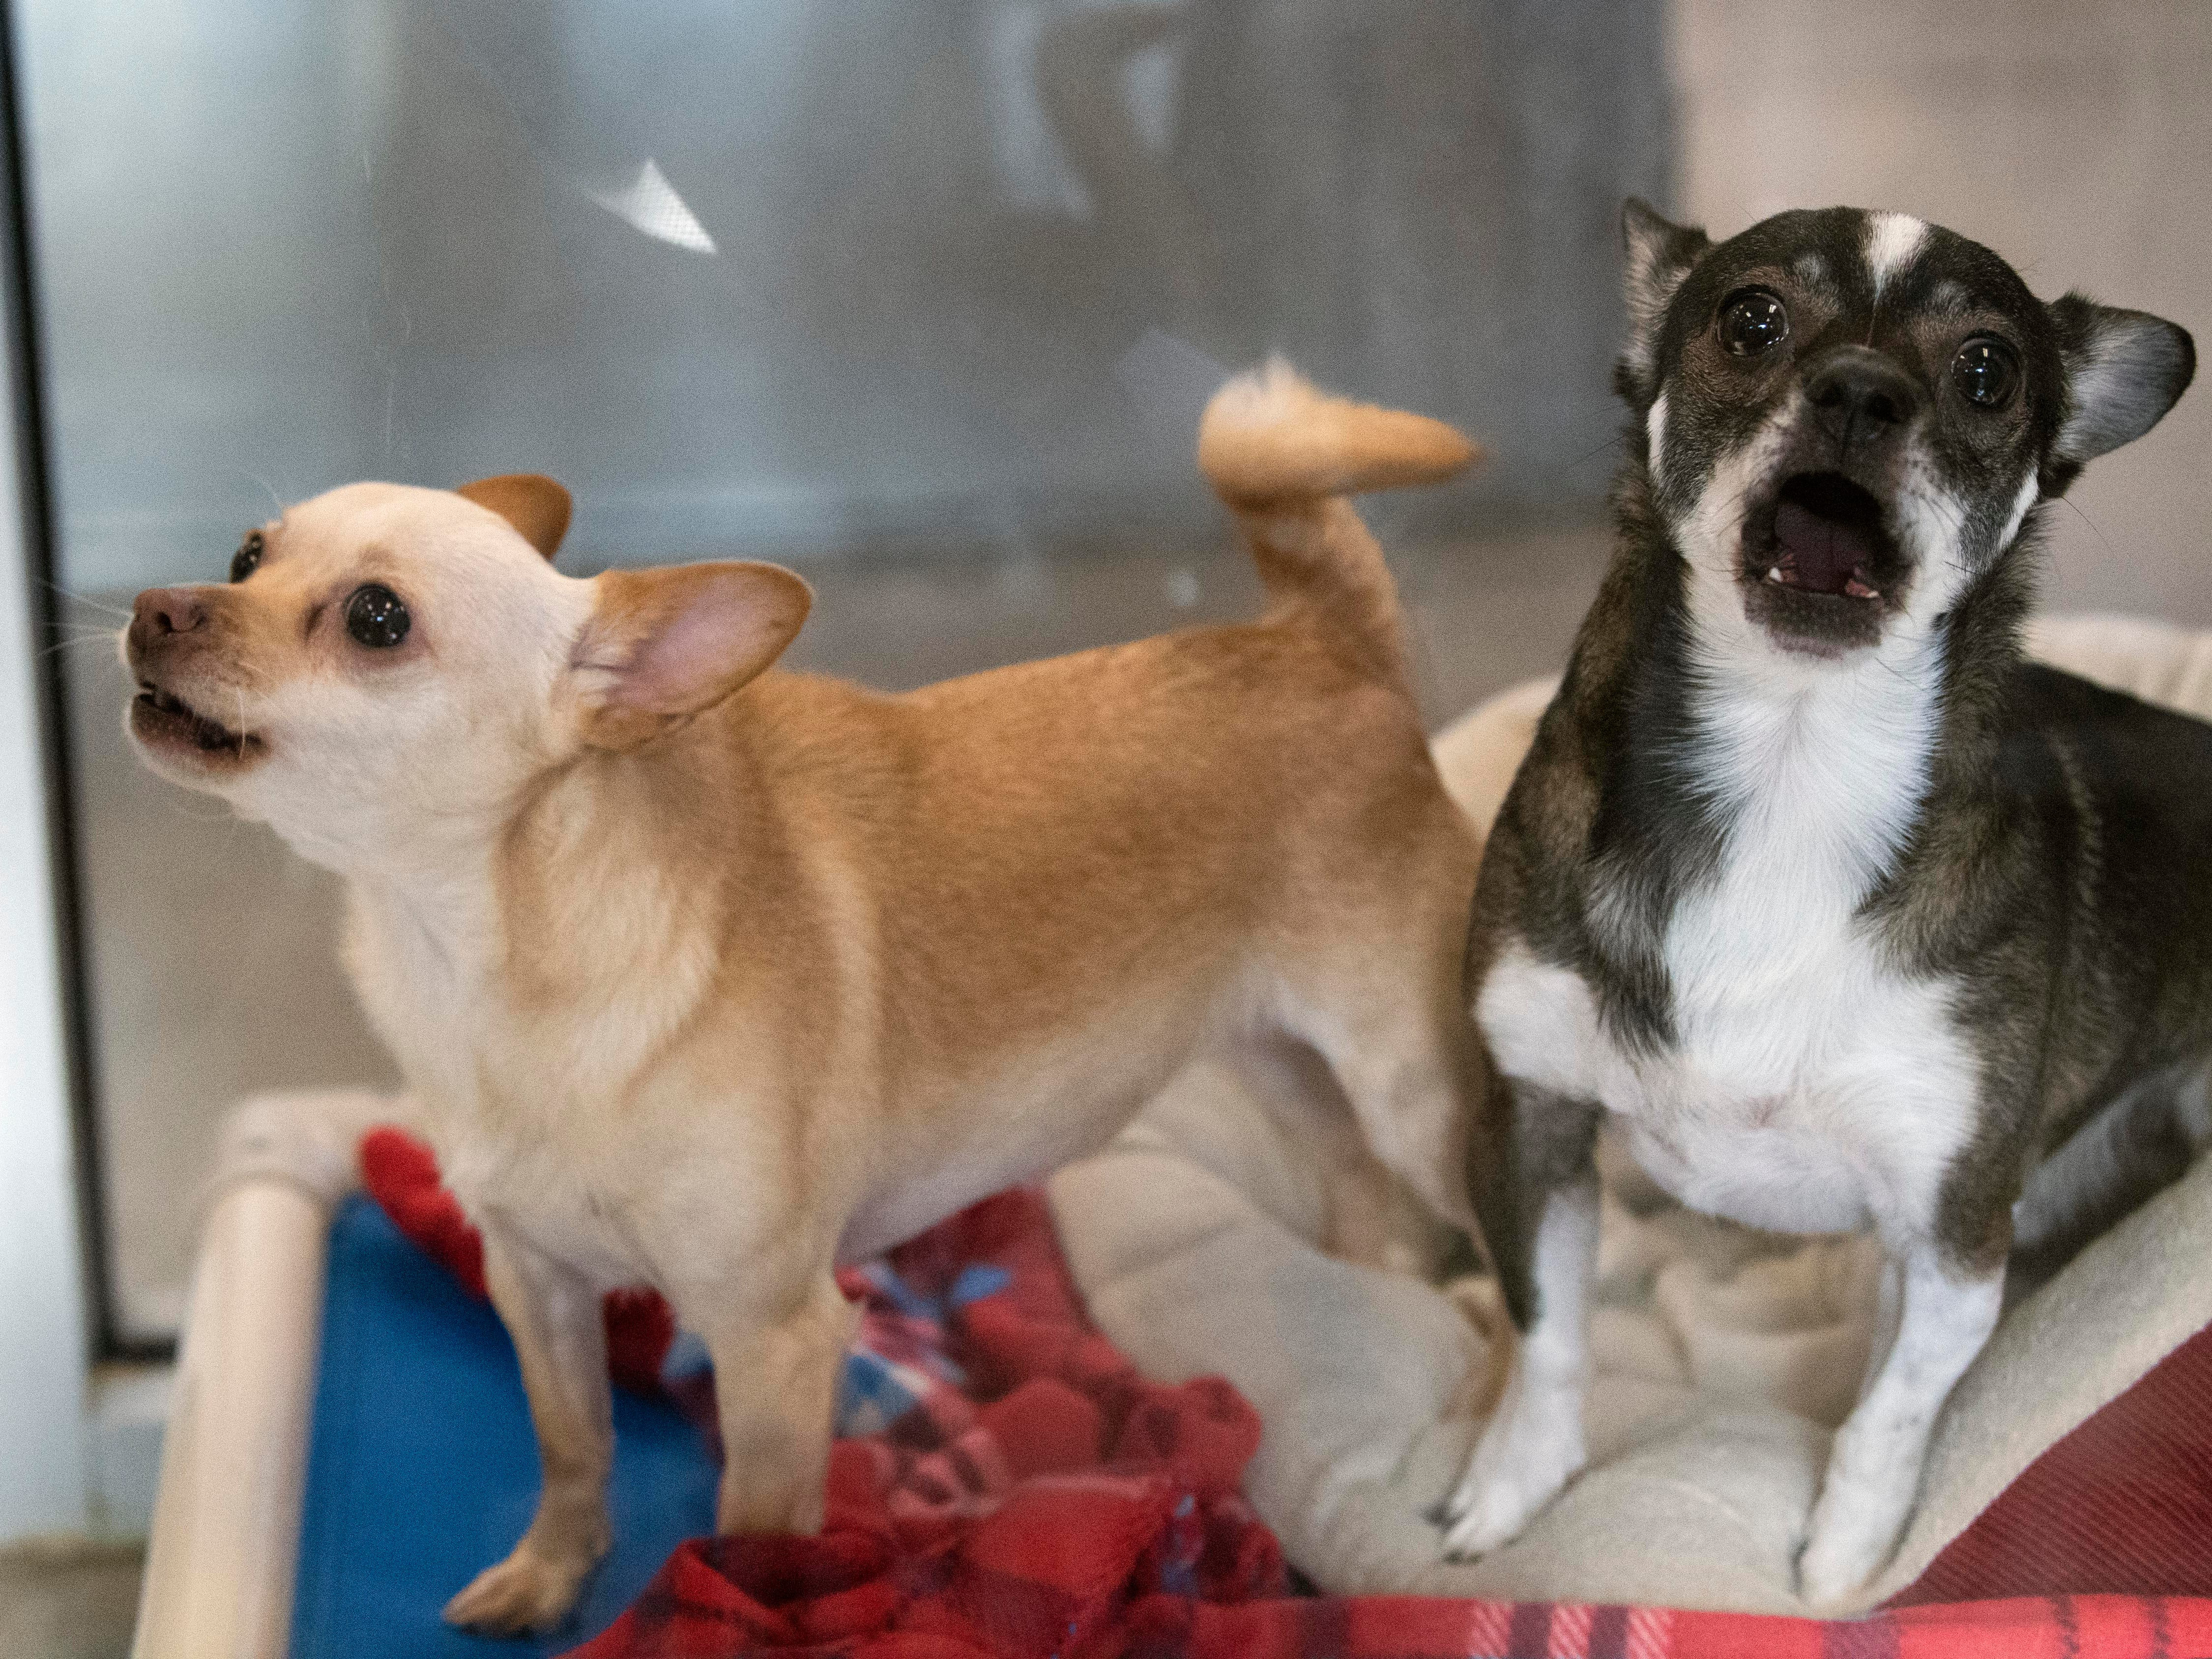 Sammy, right, and Honey, both 2-year old Chihuahuas,  were returned to the shelter because of allergies. The pair are bonded and must be adopted together.